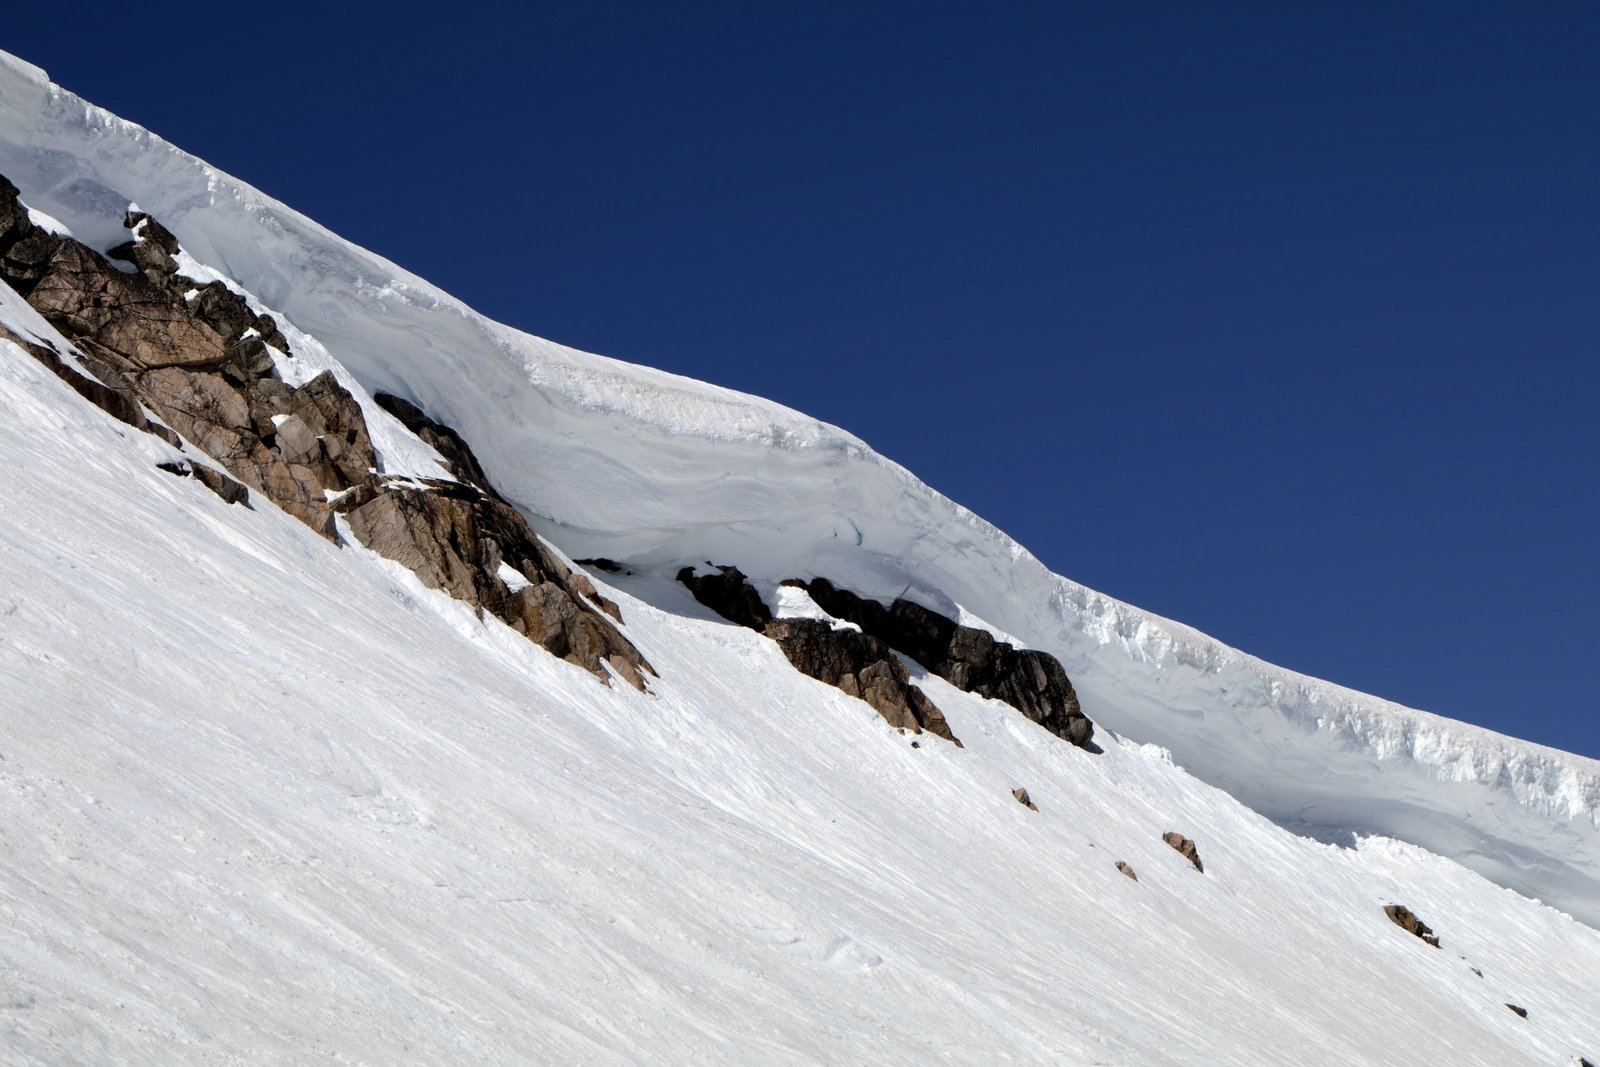 Beartooth cornice.